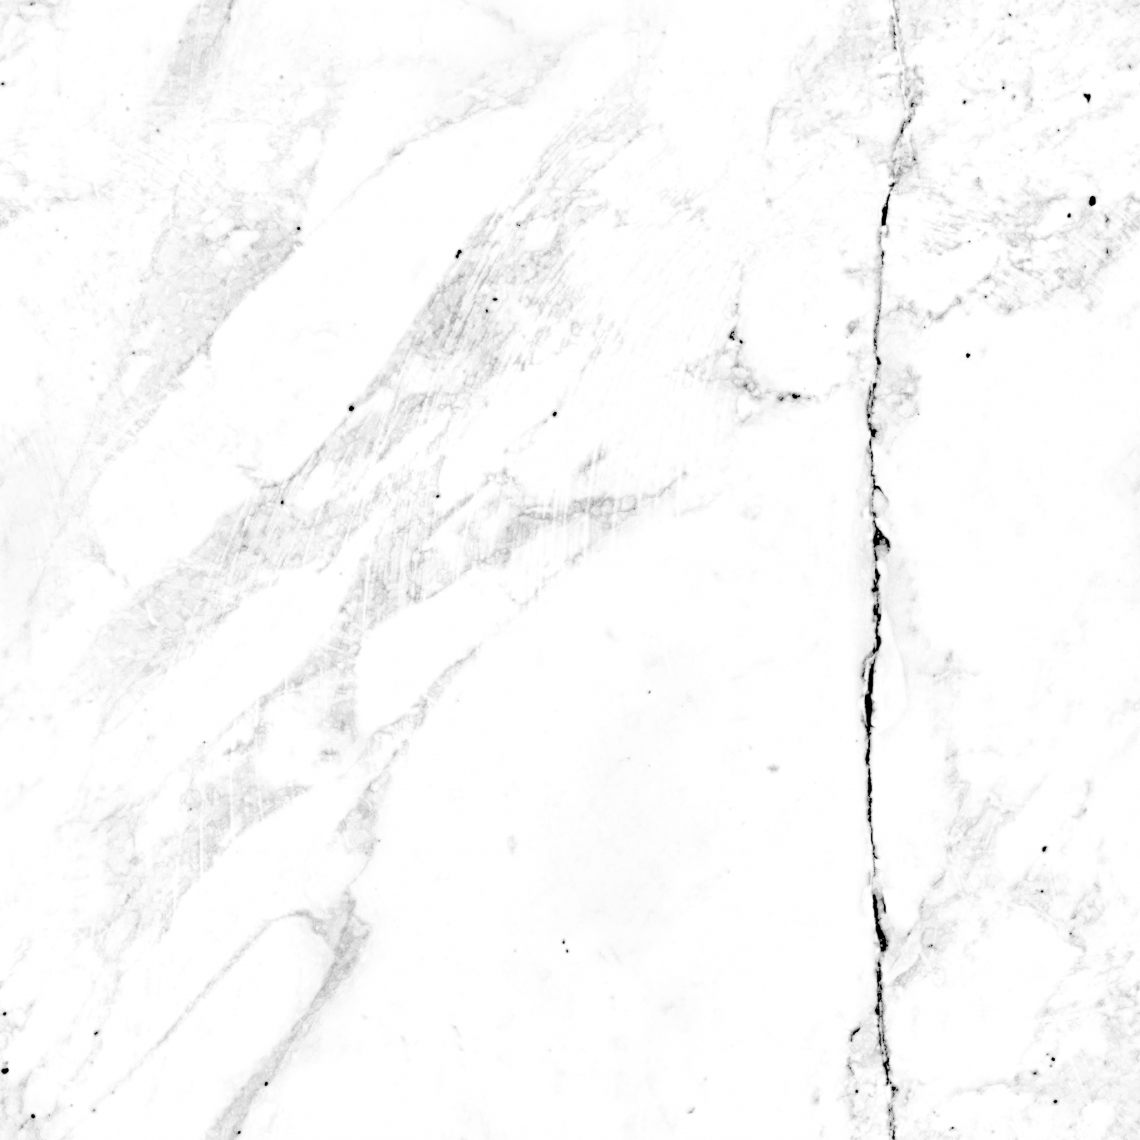 White-Marble-01-Ambient-Occlusion - Seamless